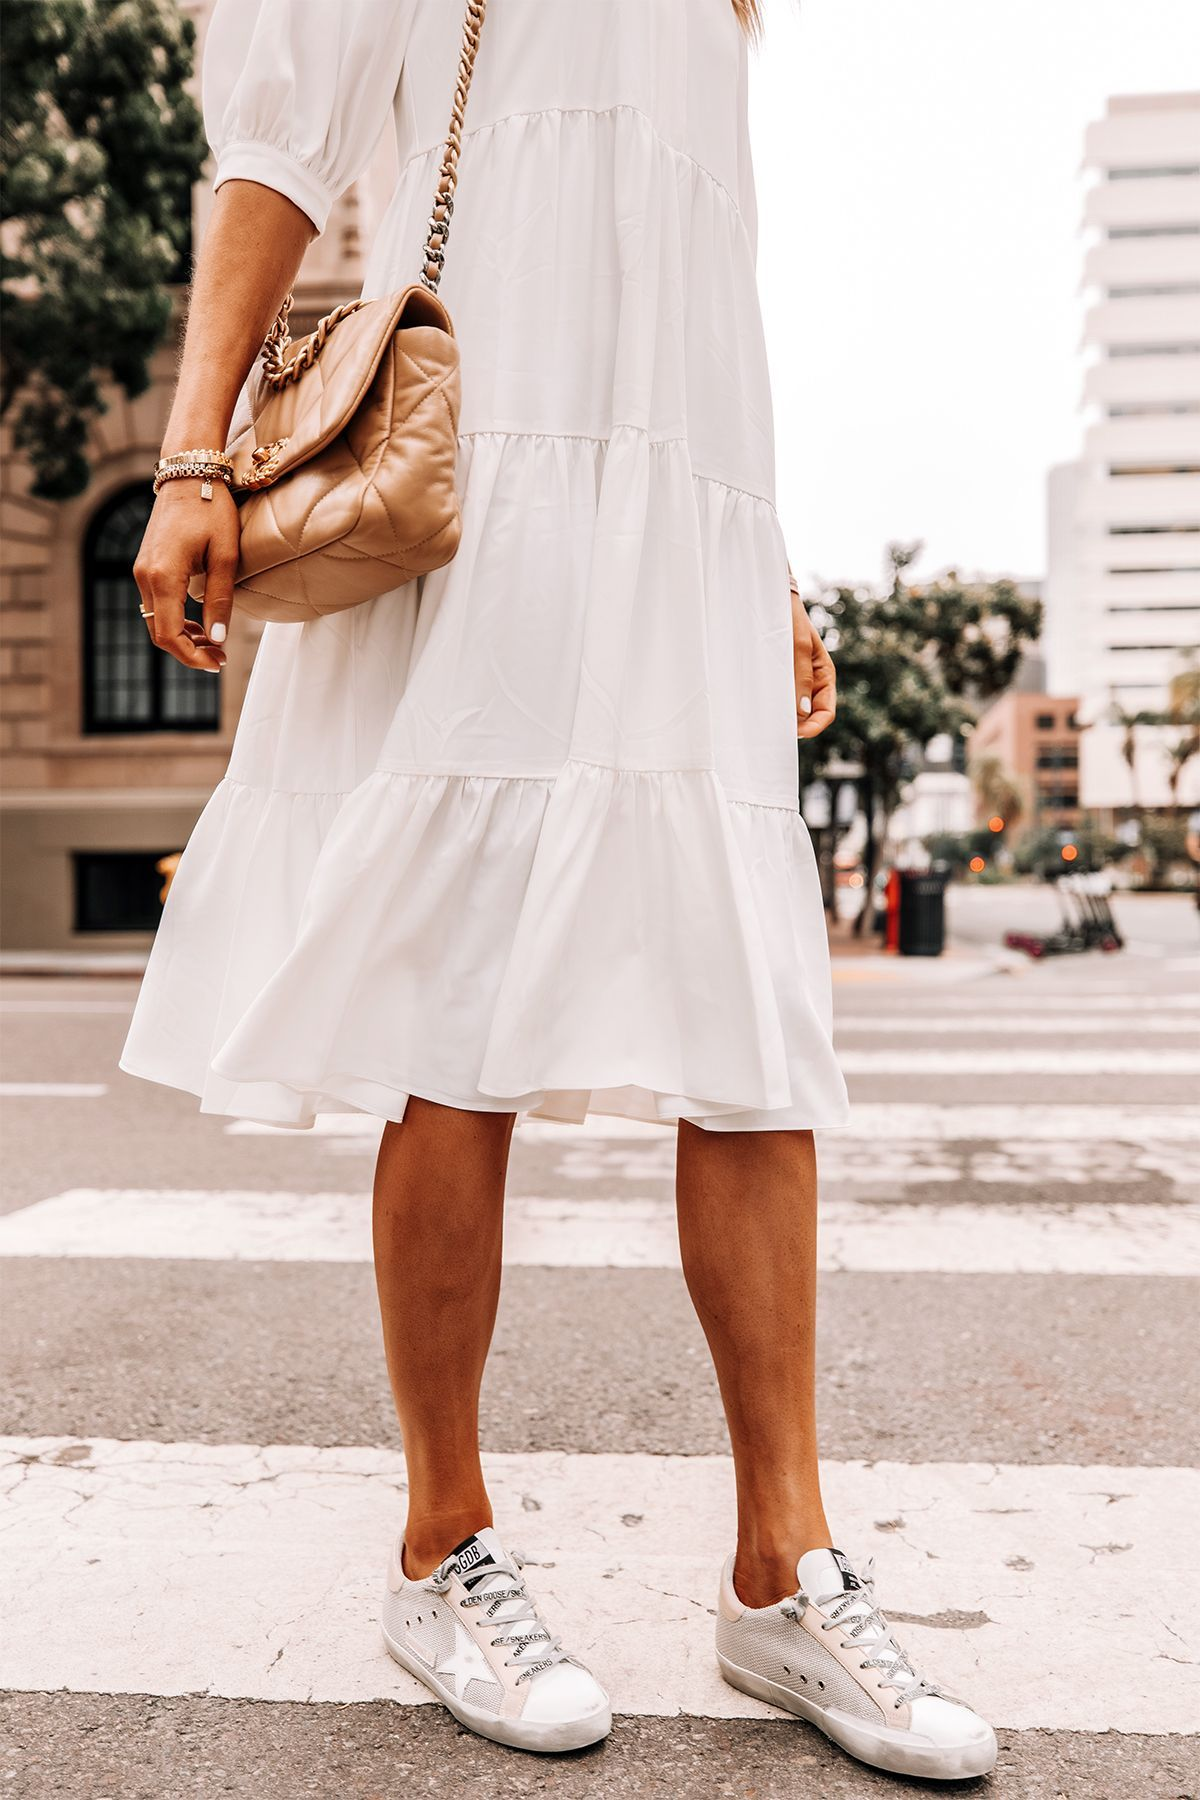 How To Pull Of Wearing A White Summer Dress With Sneakers Fashion Jackson Fashion Jackson Fashion White Dress Summer [ 1800 x 1200 Pixel ]